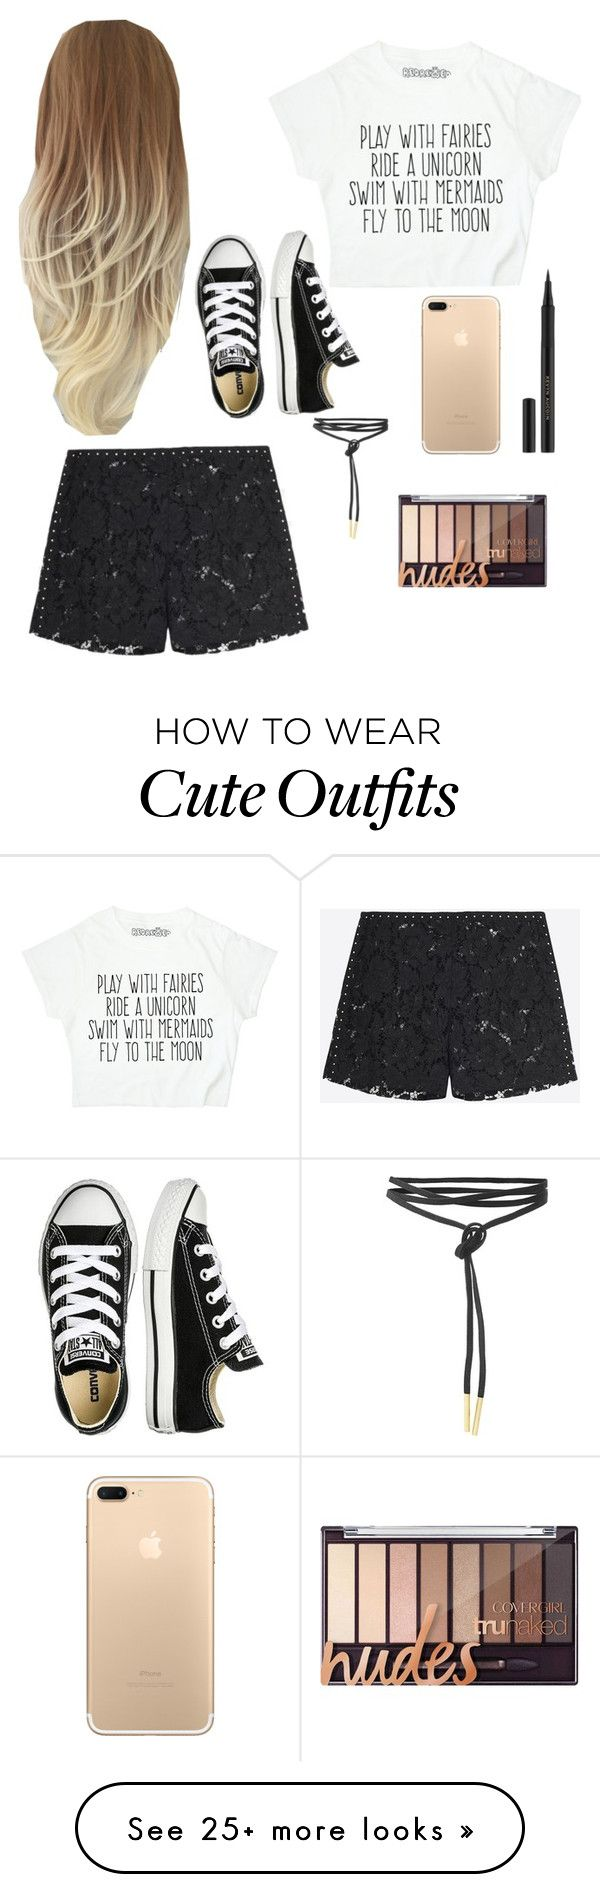 """#cute #outfit #like #likethis #nike #magical"" by elofmel-2 on Polyvore featuring Valentino, Kevyn Aucoin and Converse"